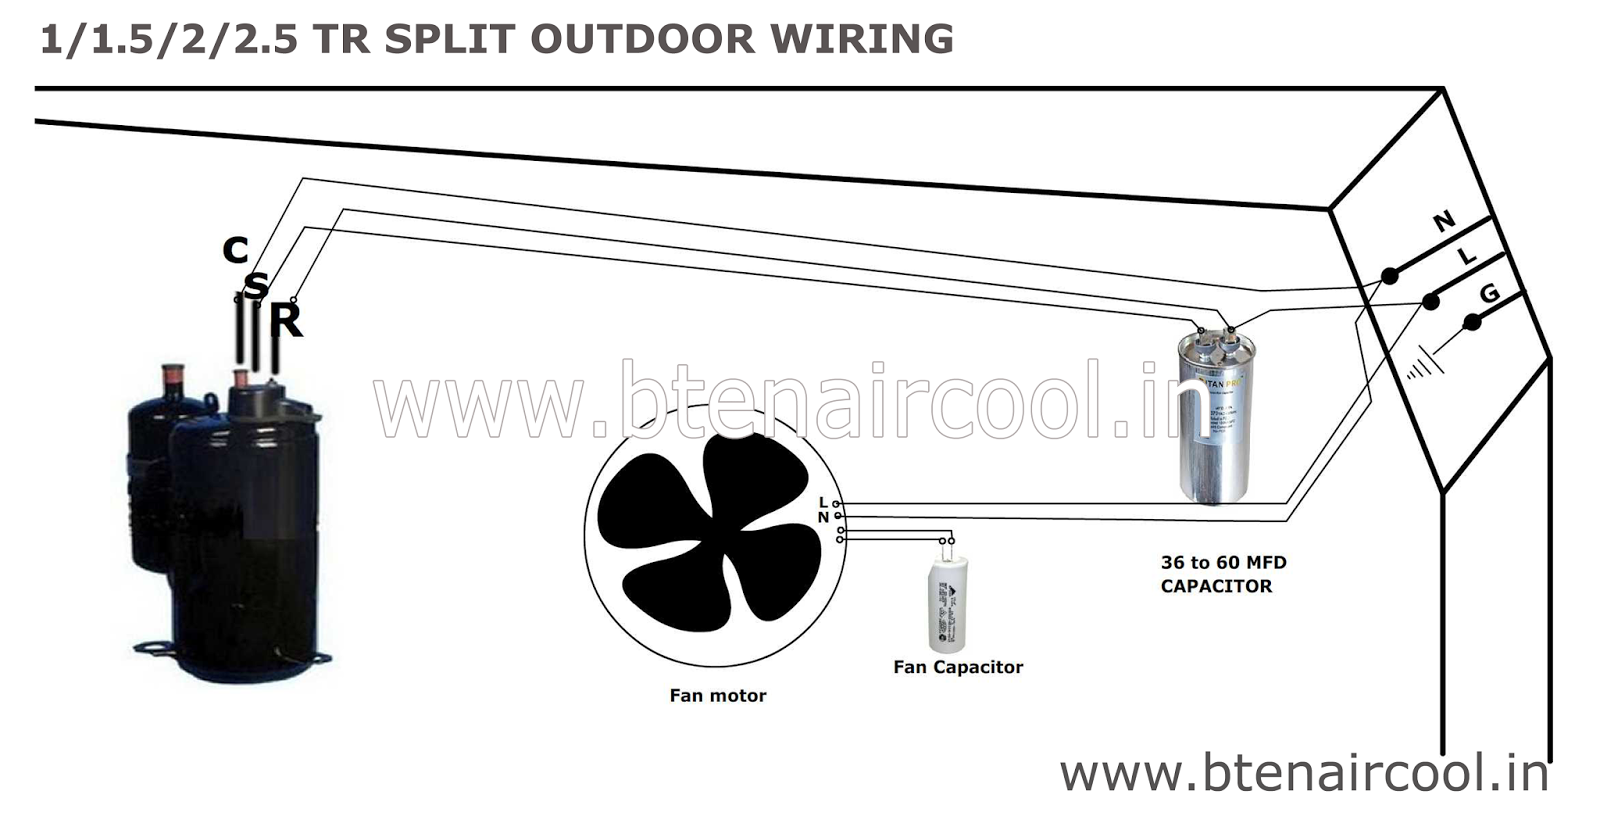 Wiring Diagram Bten Aircool